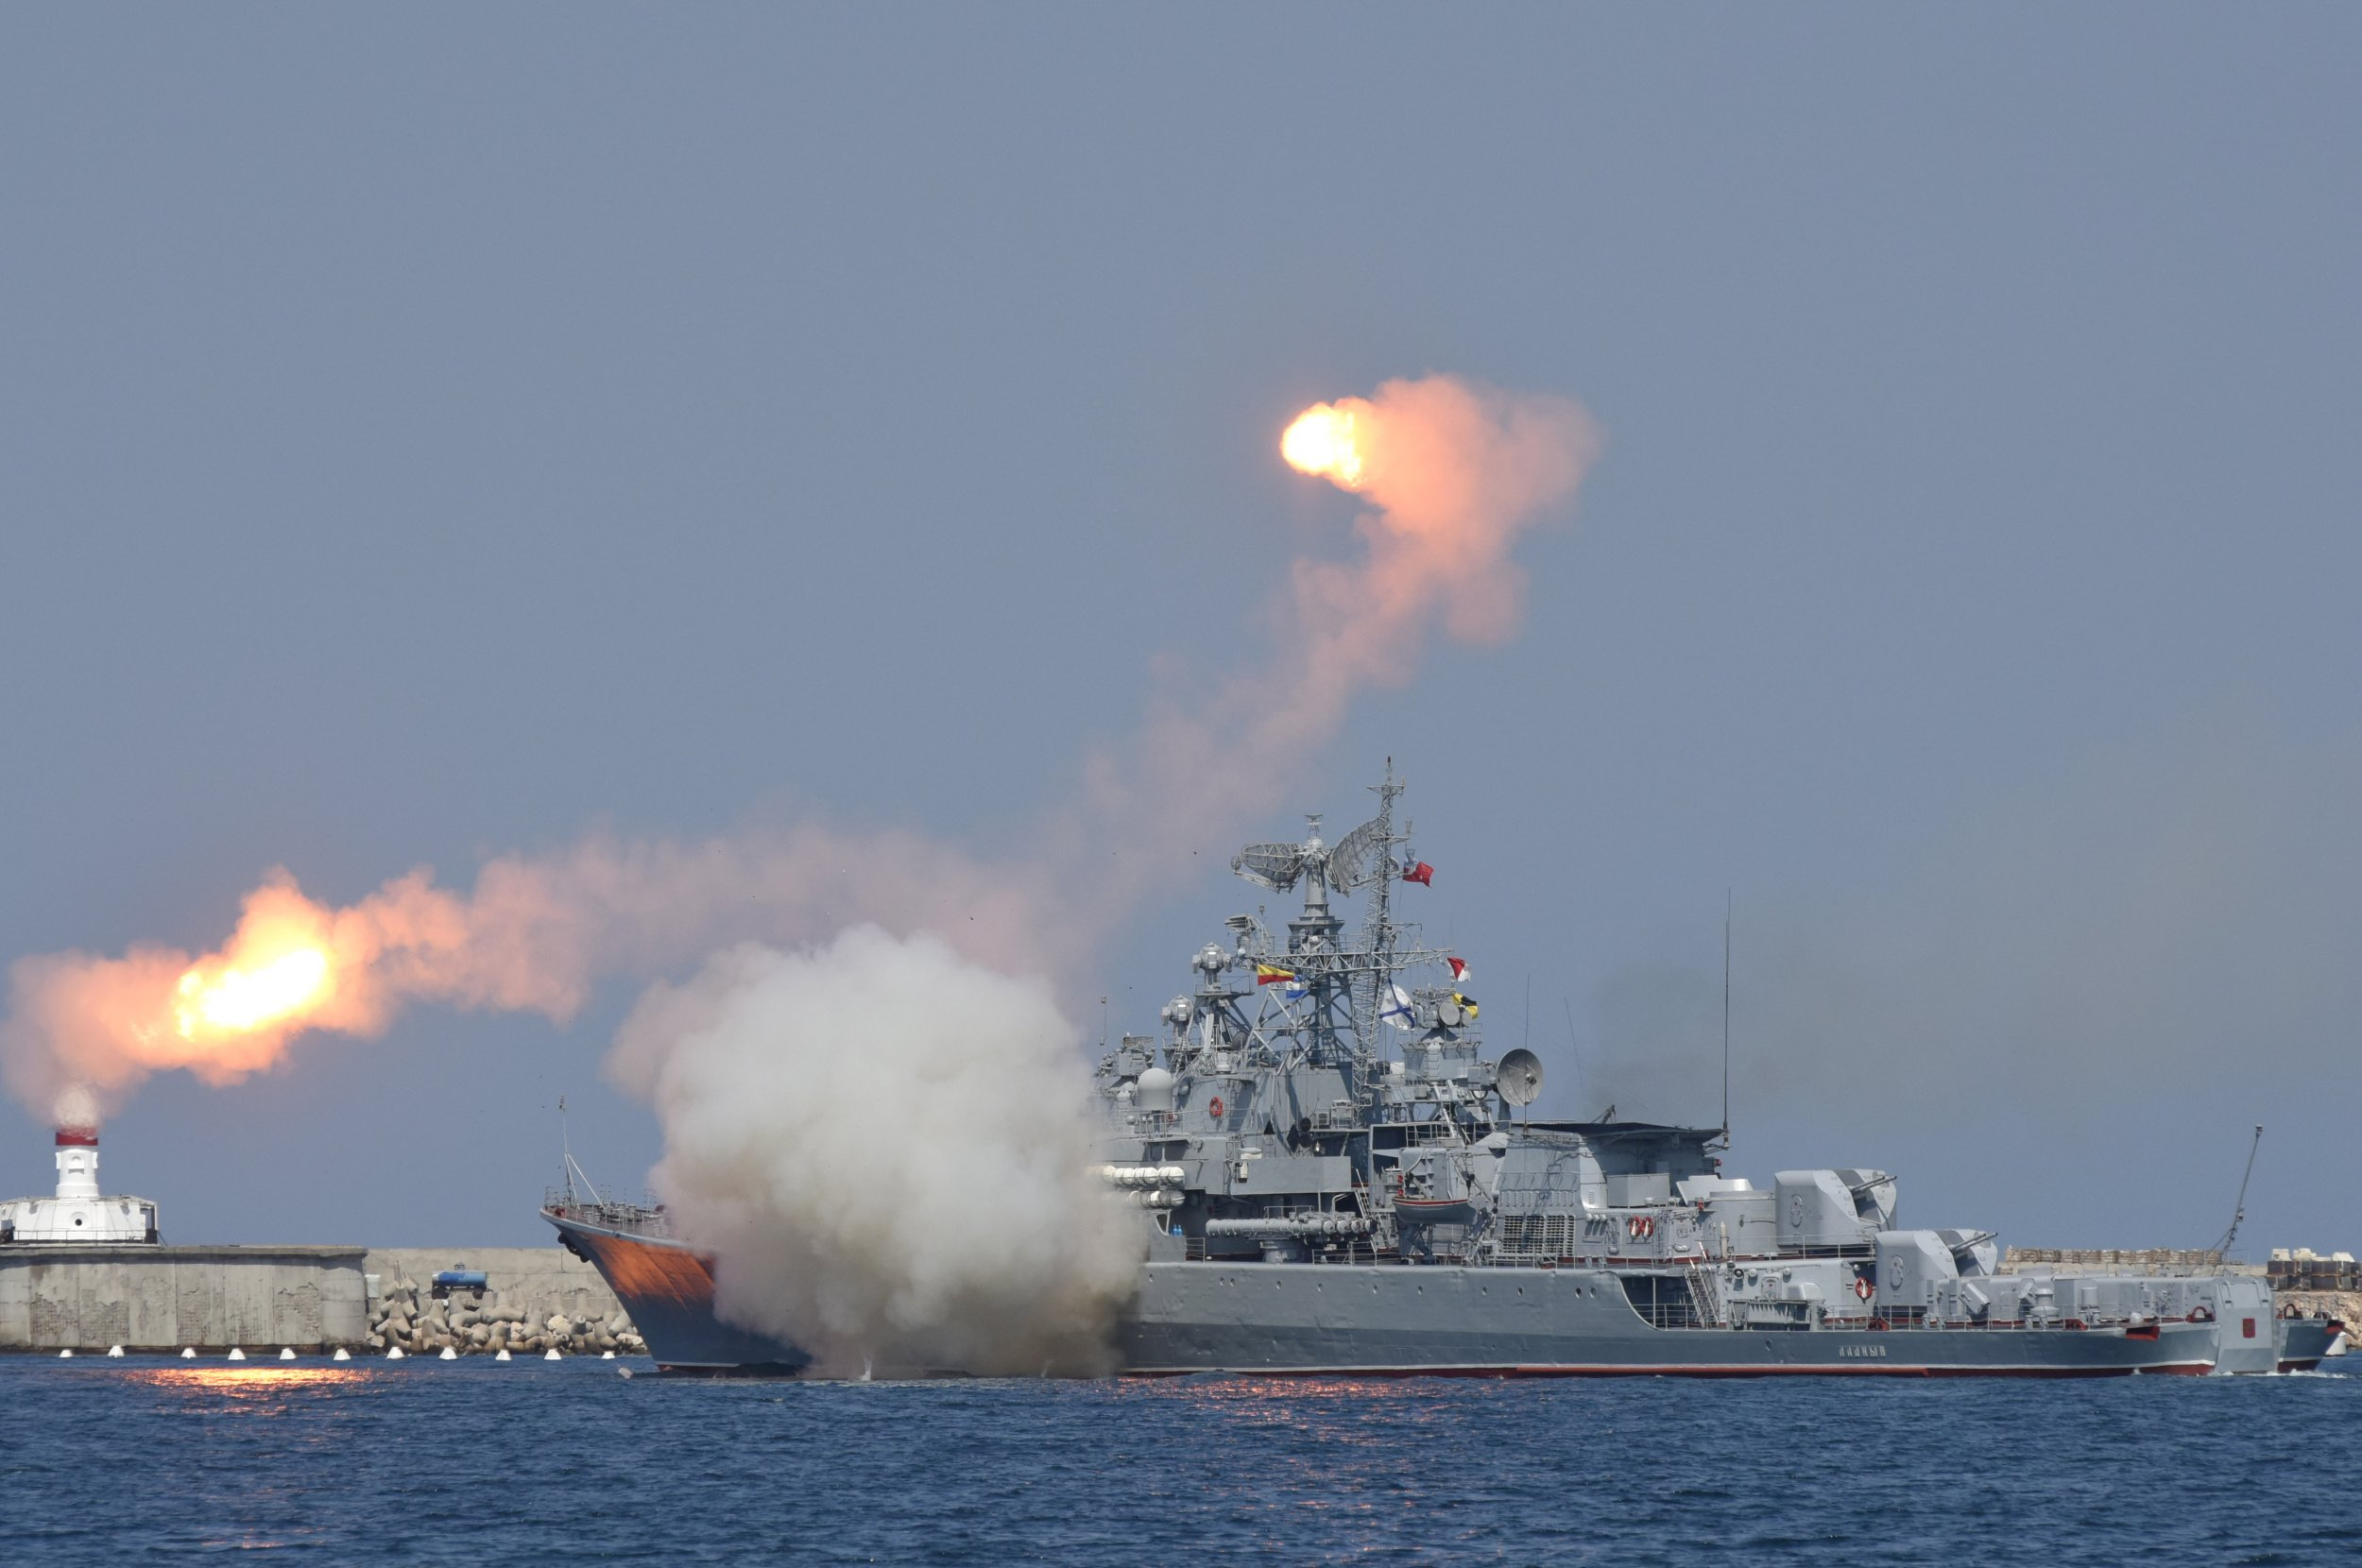 Russian warship fires missiles in the Black Sea